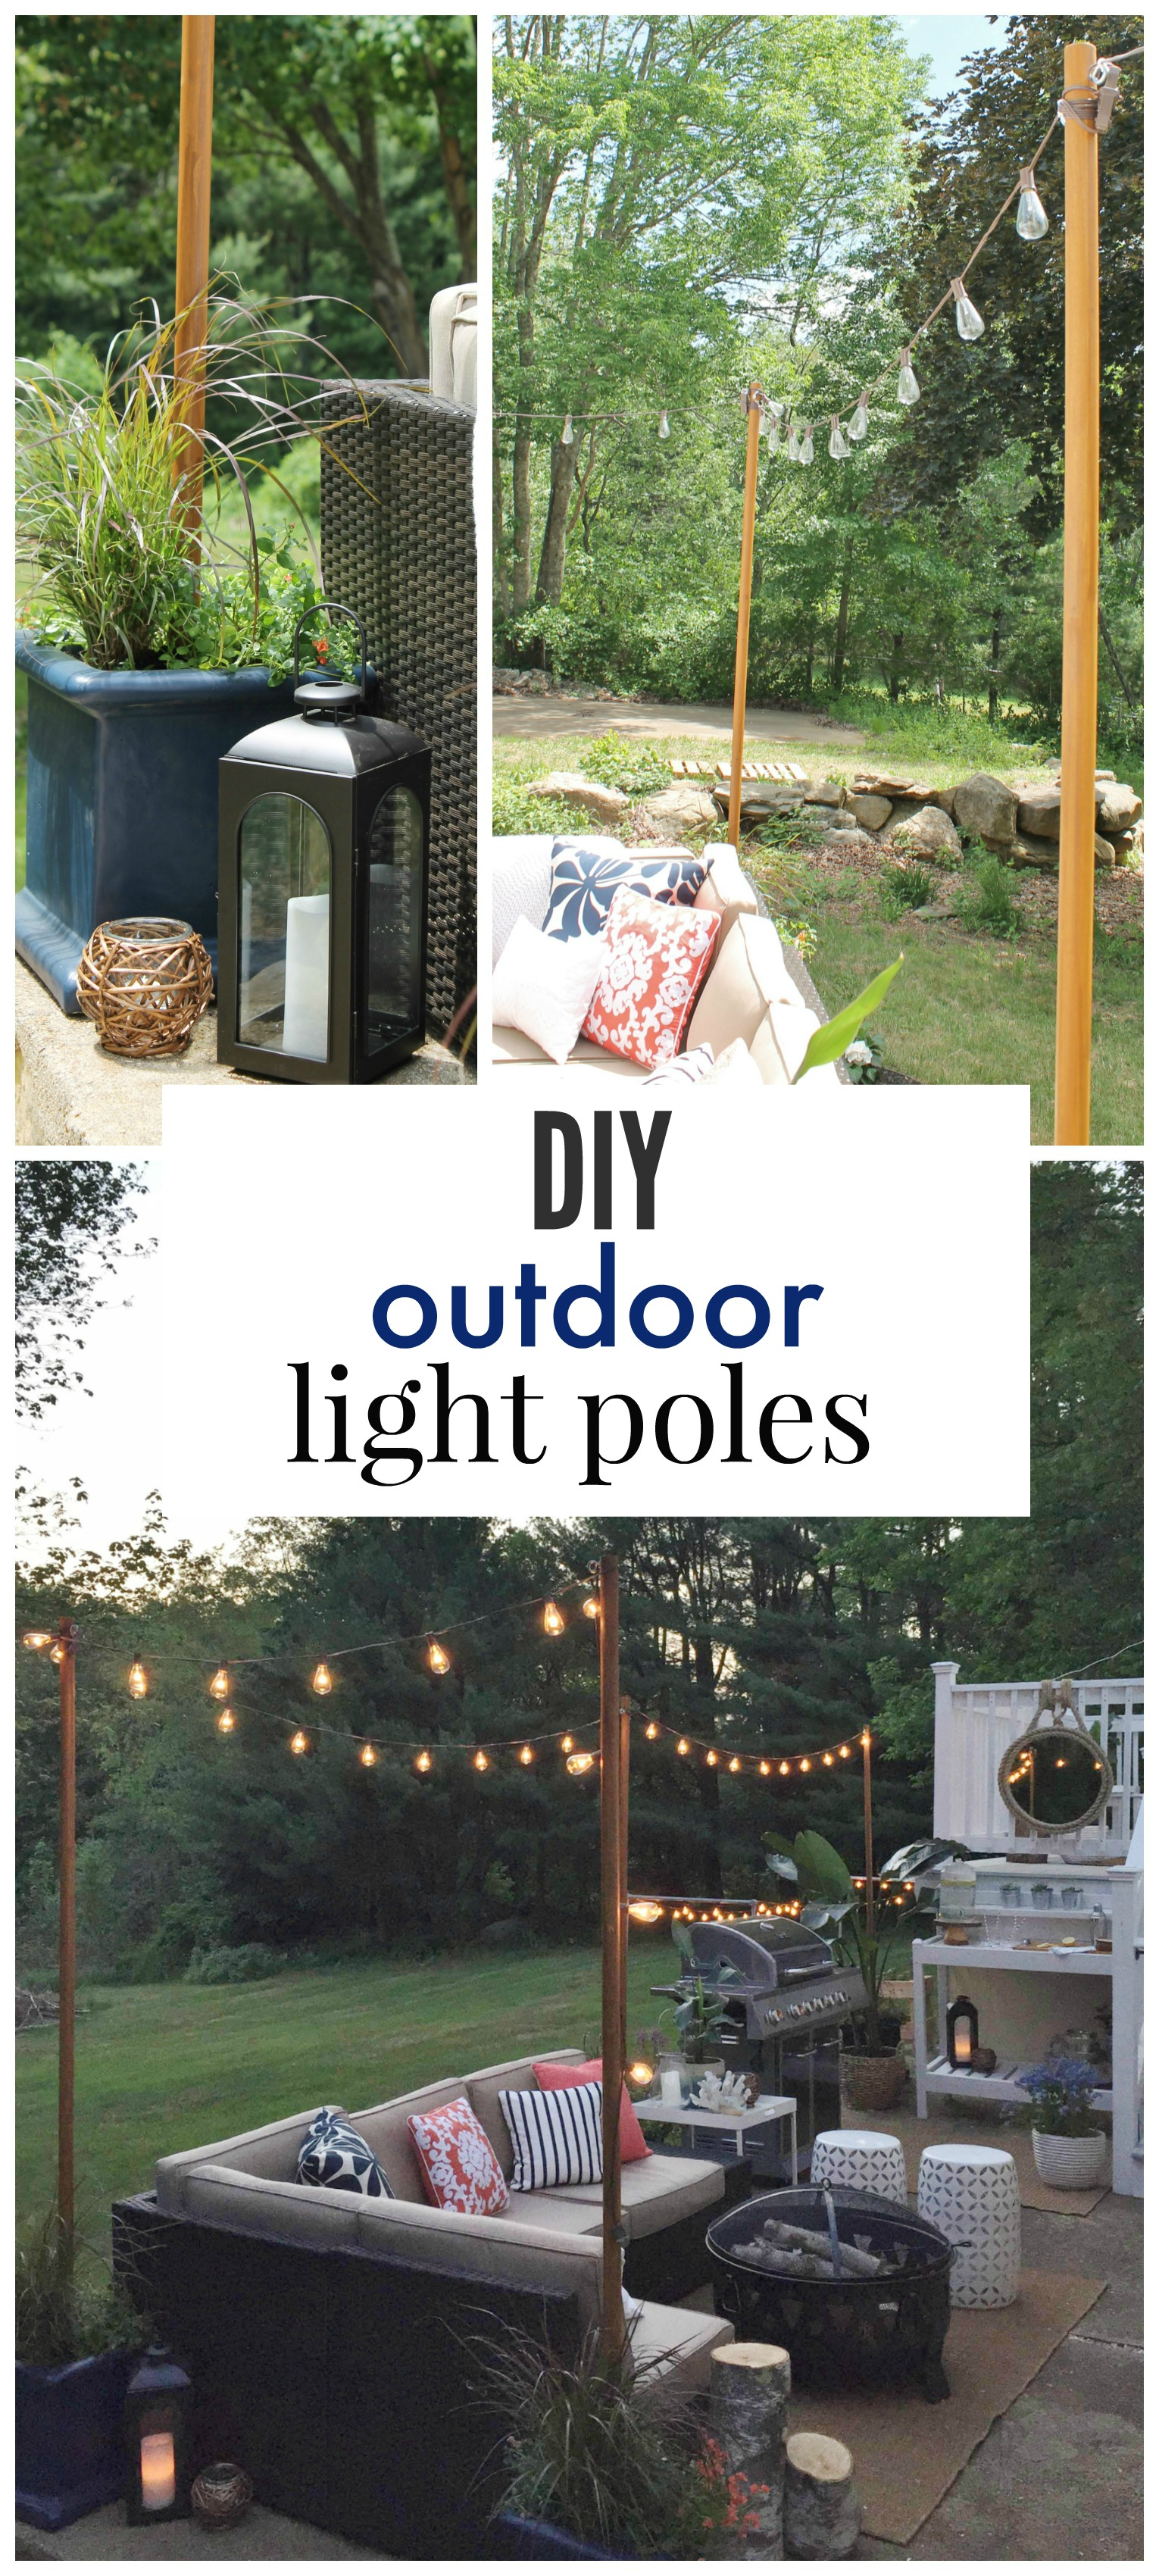 Diy Outdoor Light Poles Everthing You Need For Lighting From Lowe S